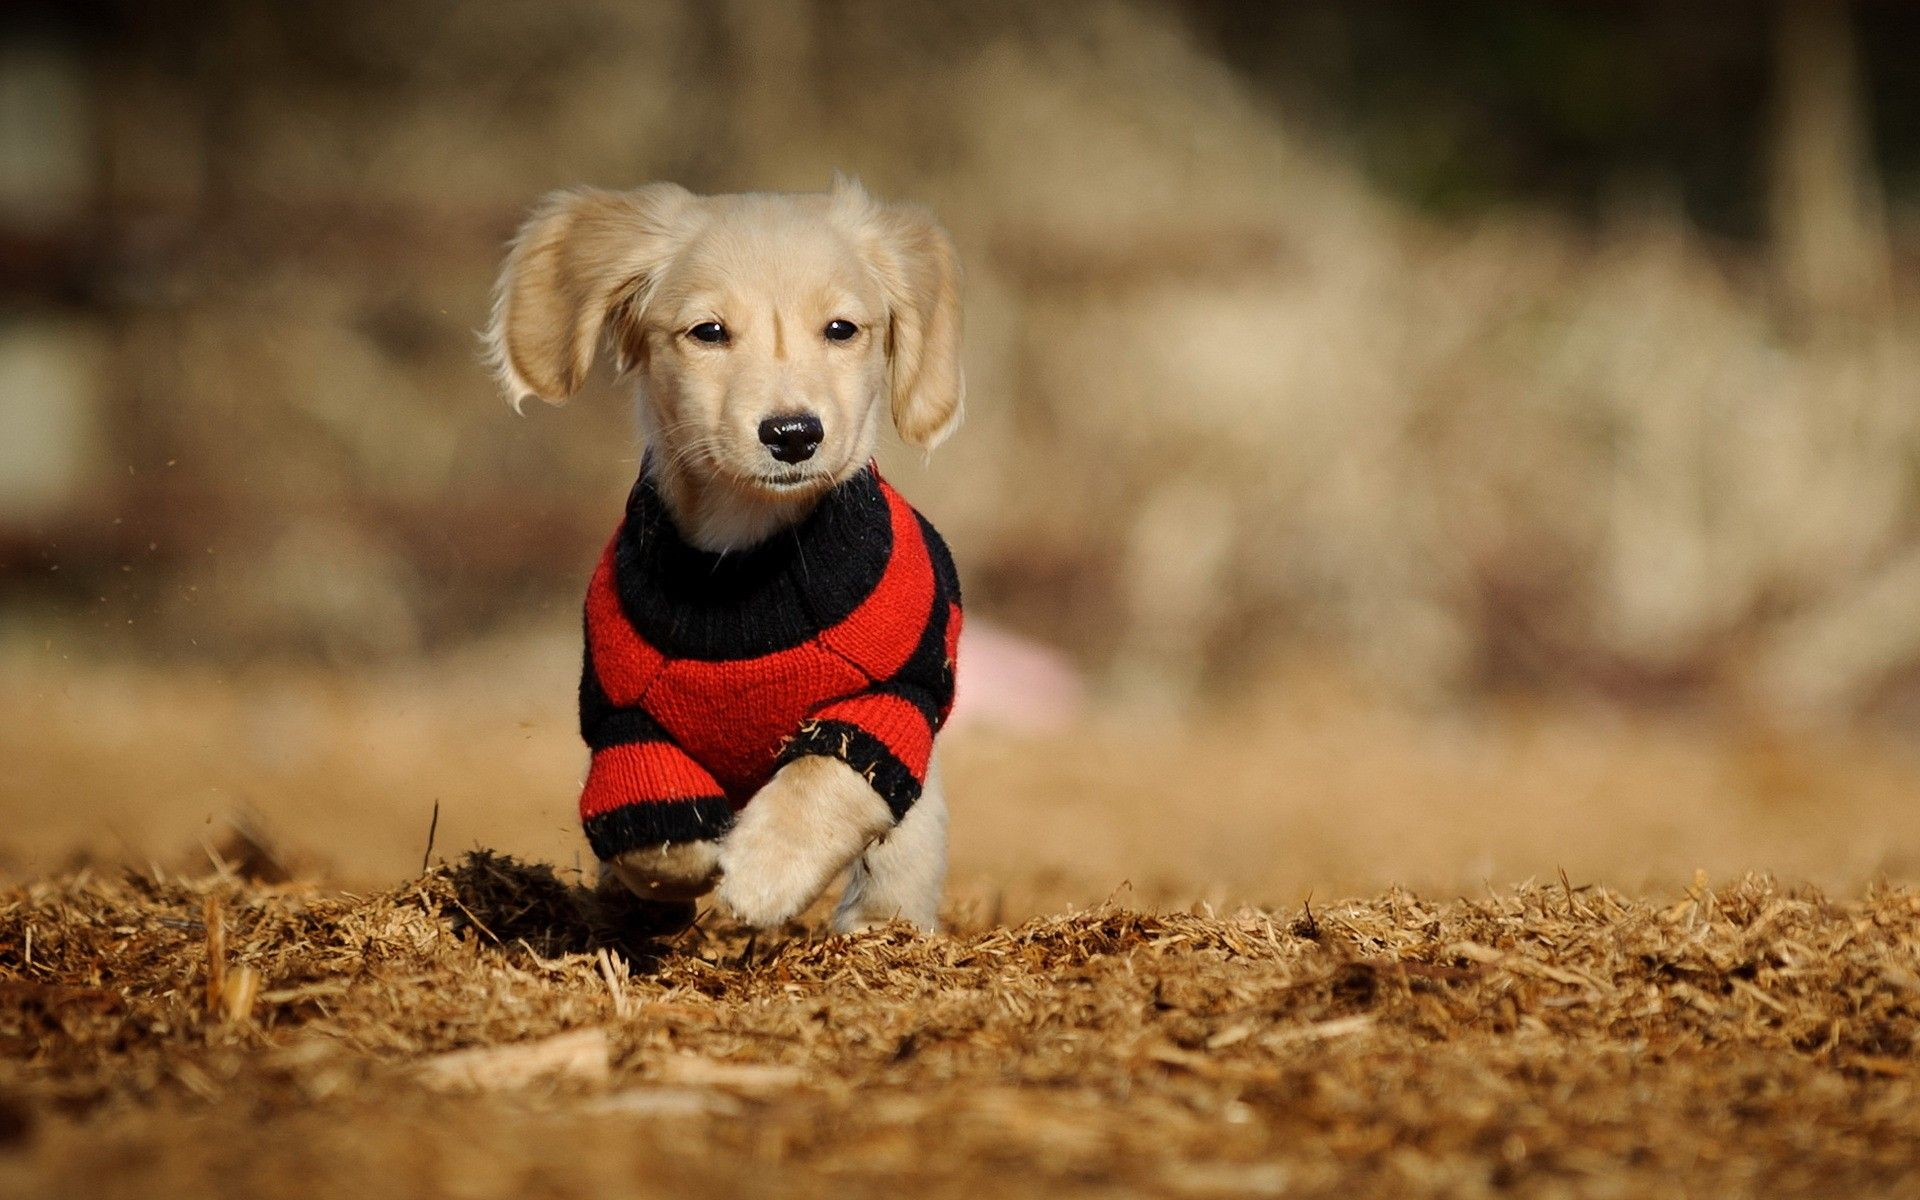 clothed cute dog | animals hd wallpapers | pinterest | dog